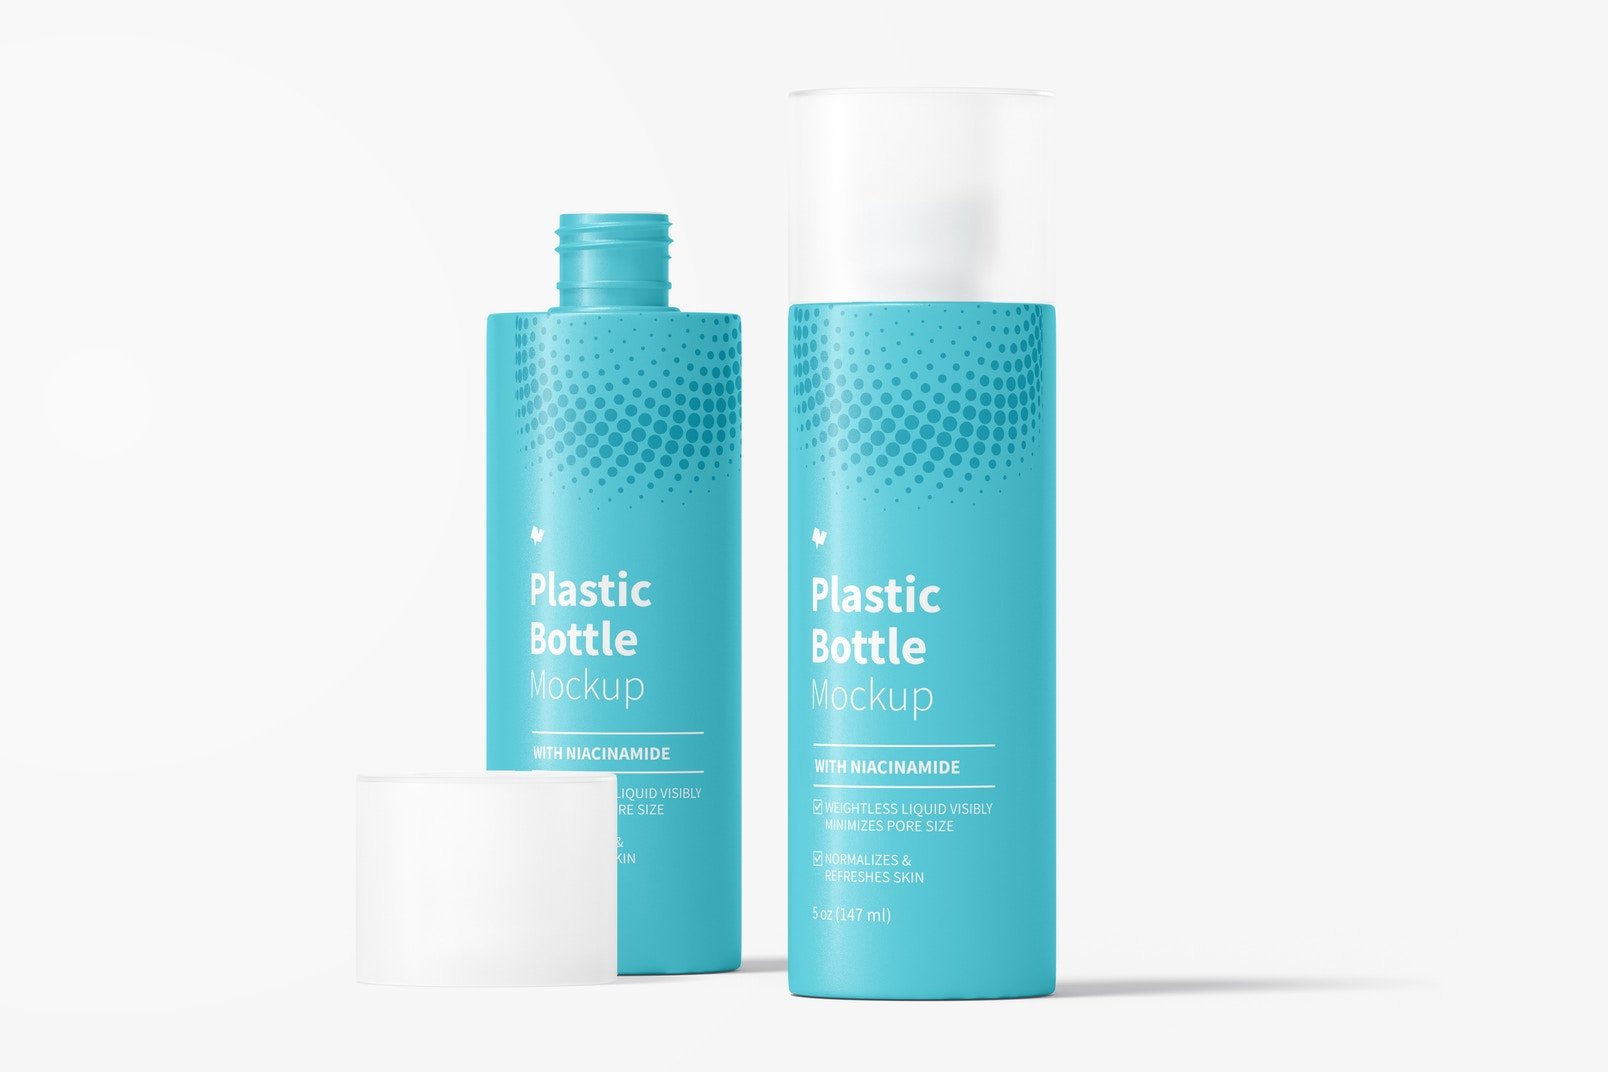 5 oz Plastic Bottles Mockup, Opened and Closed